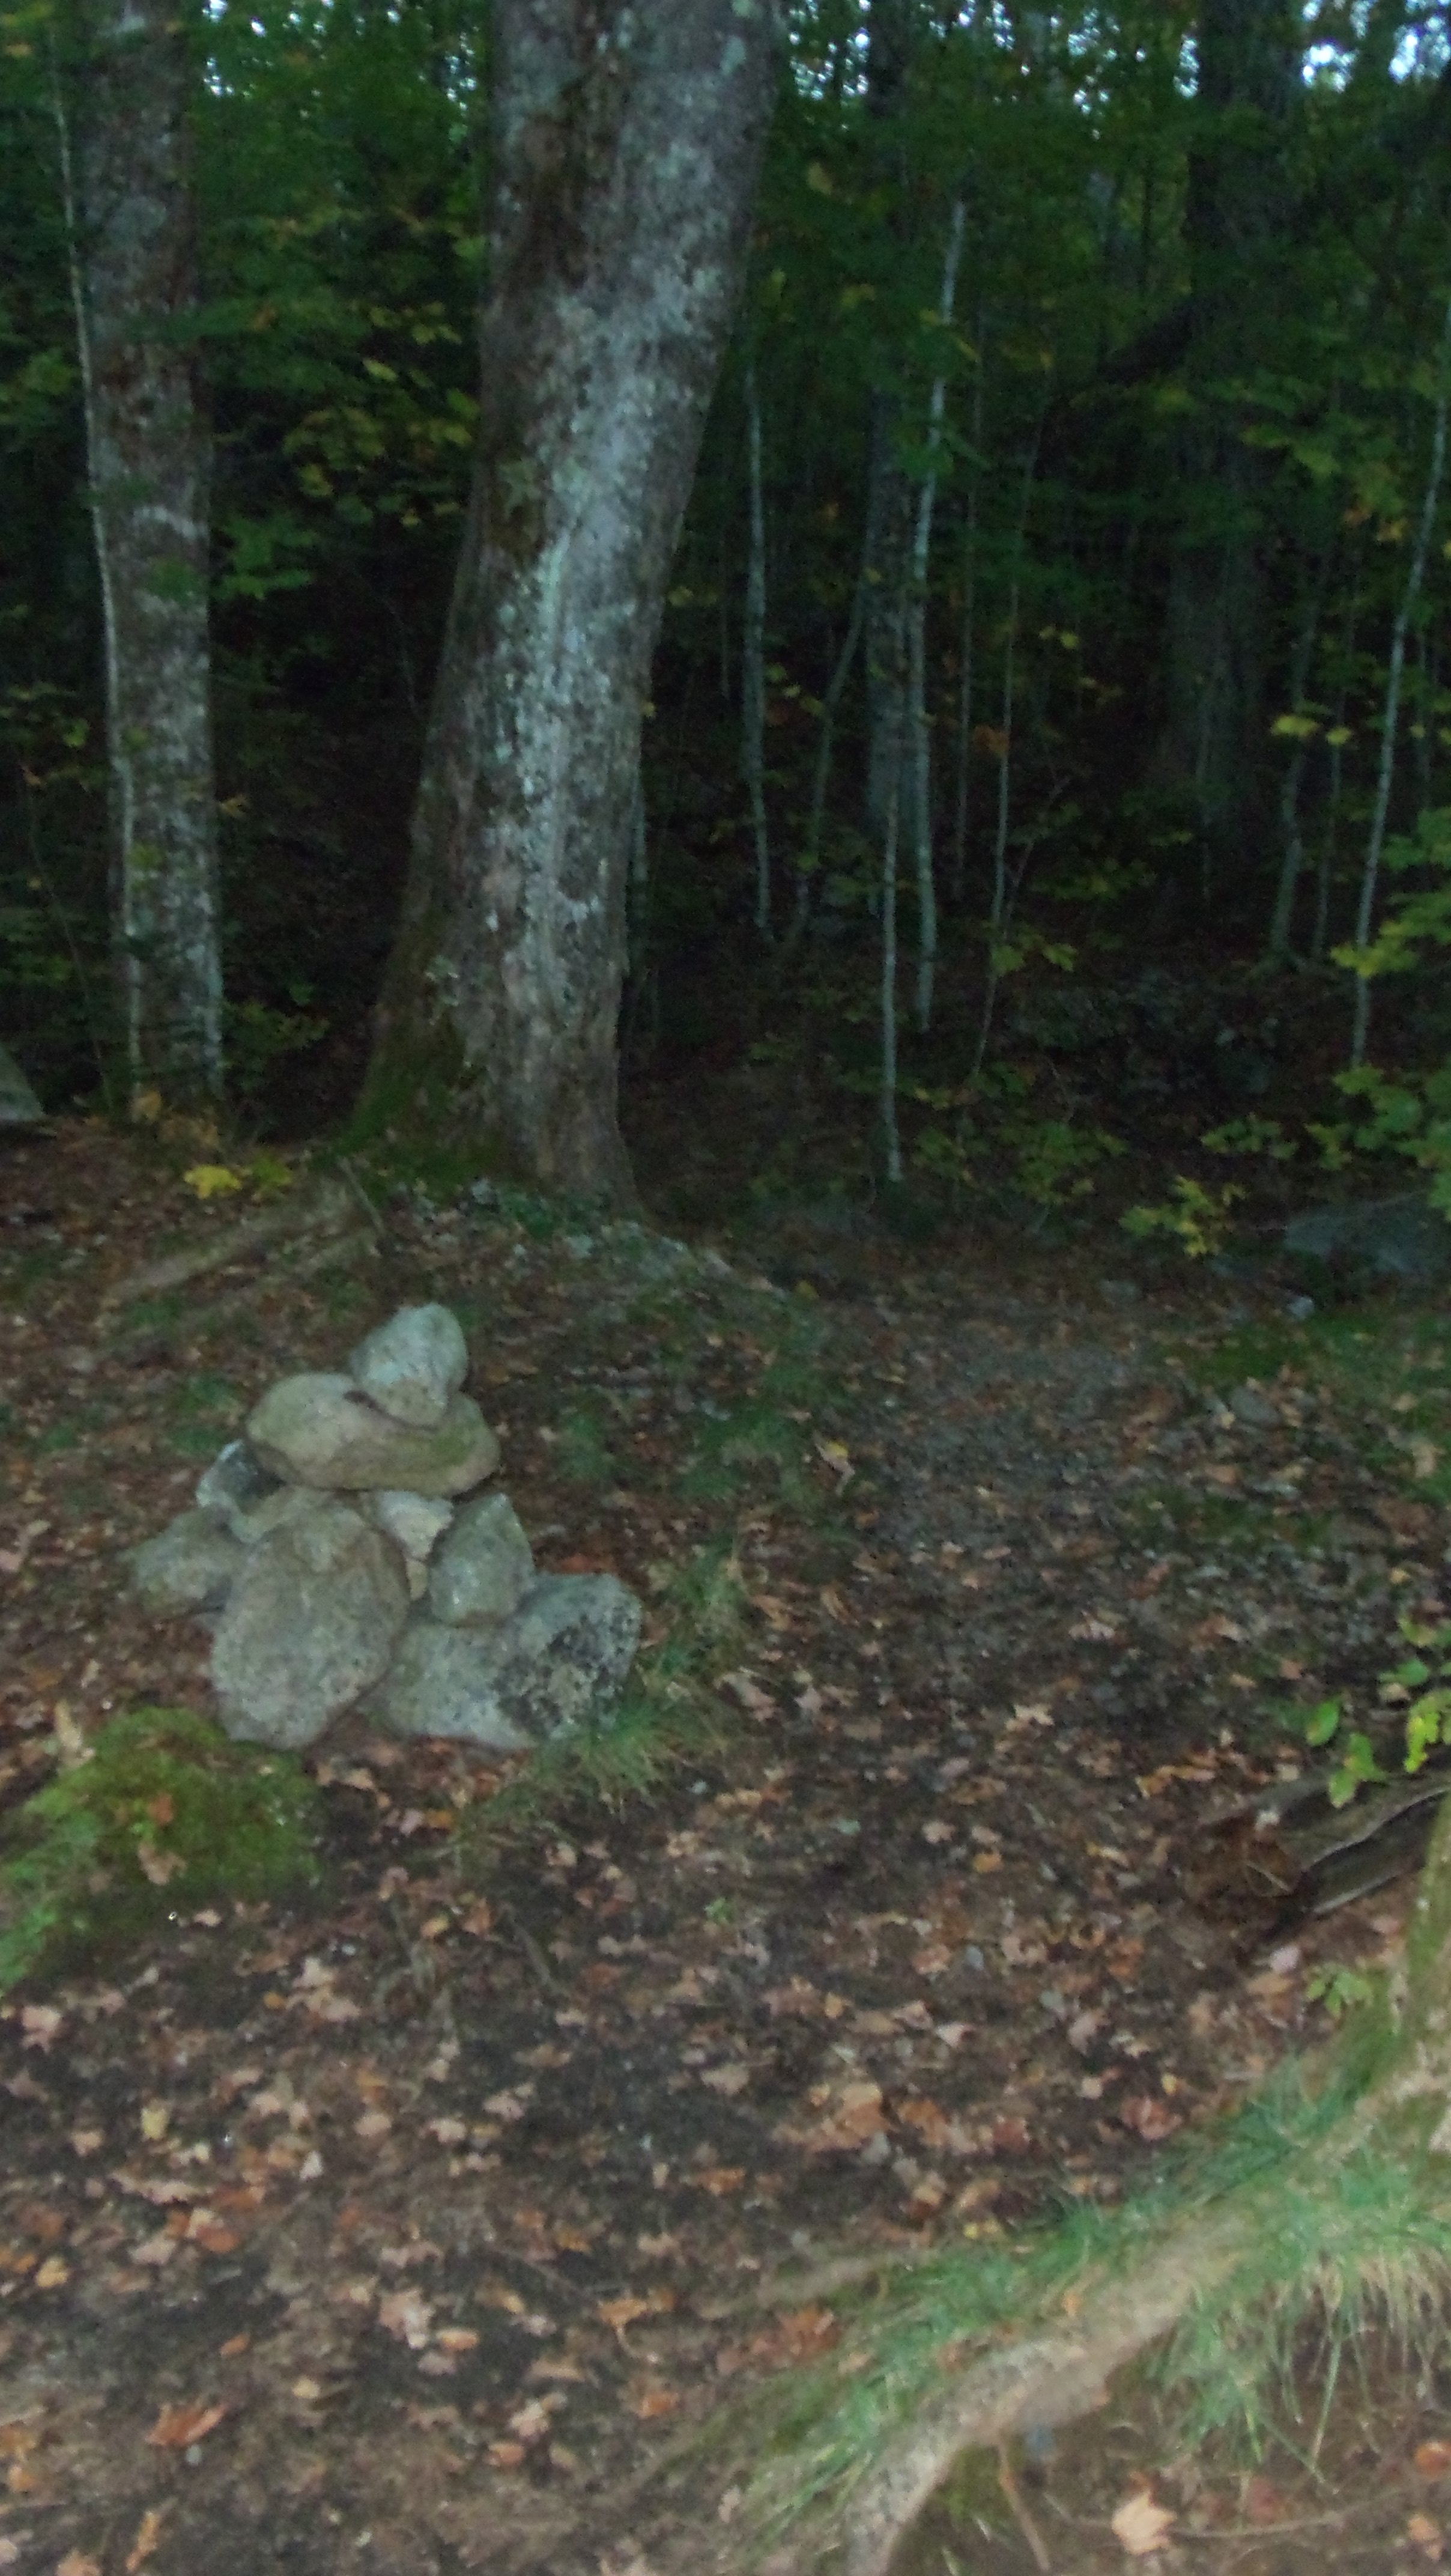 cairn marking Slide Brook herd path to Macomb